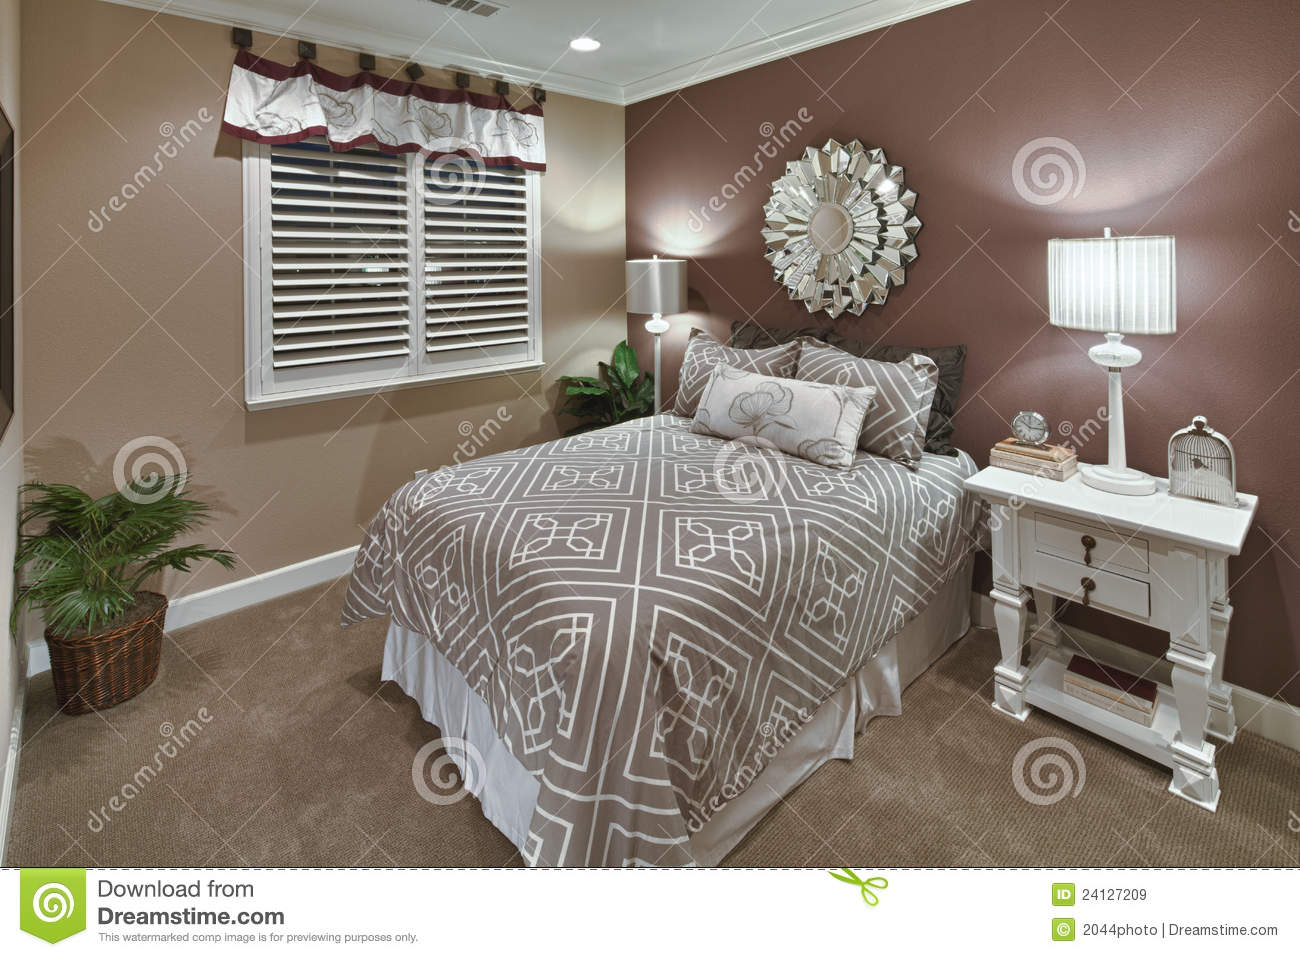 Pictures of model home bedrooms